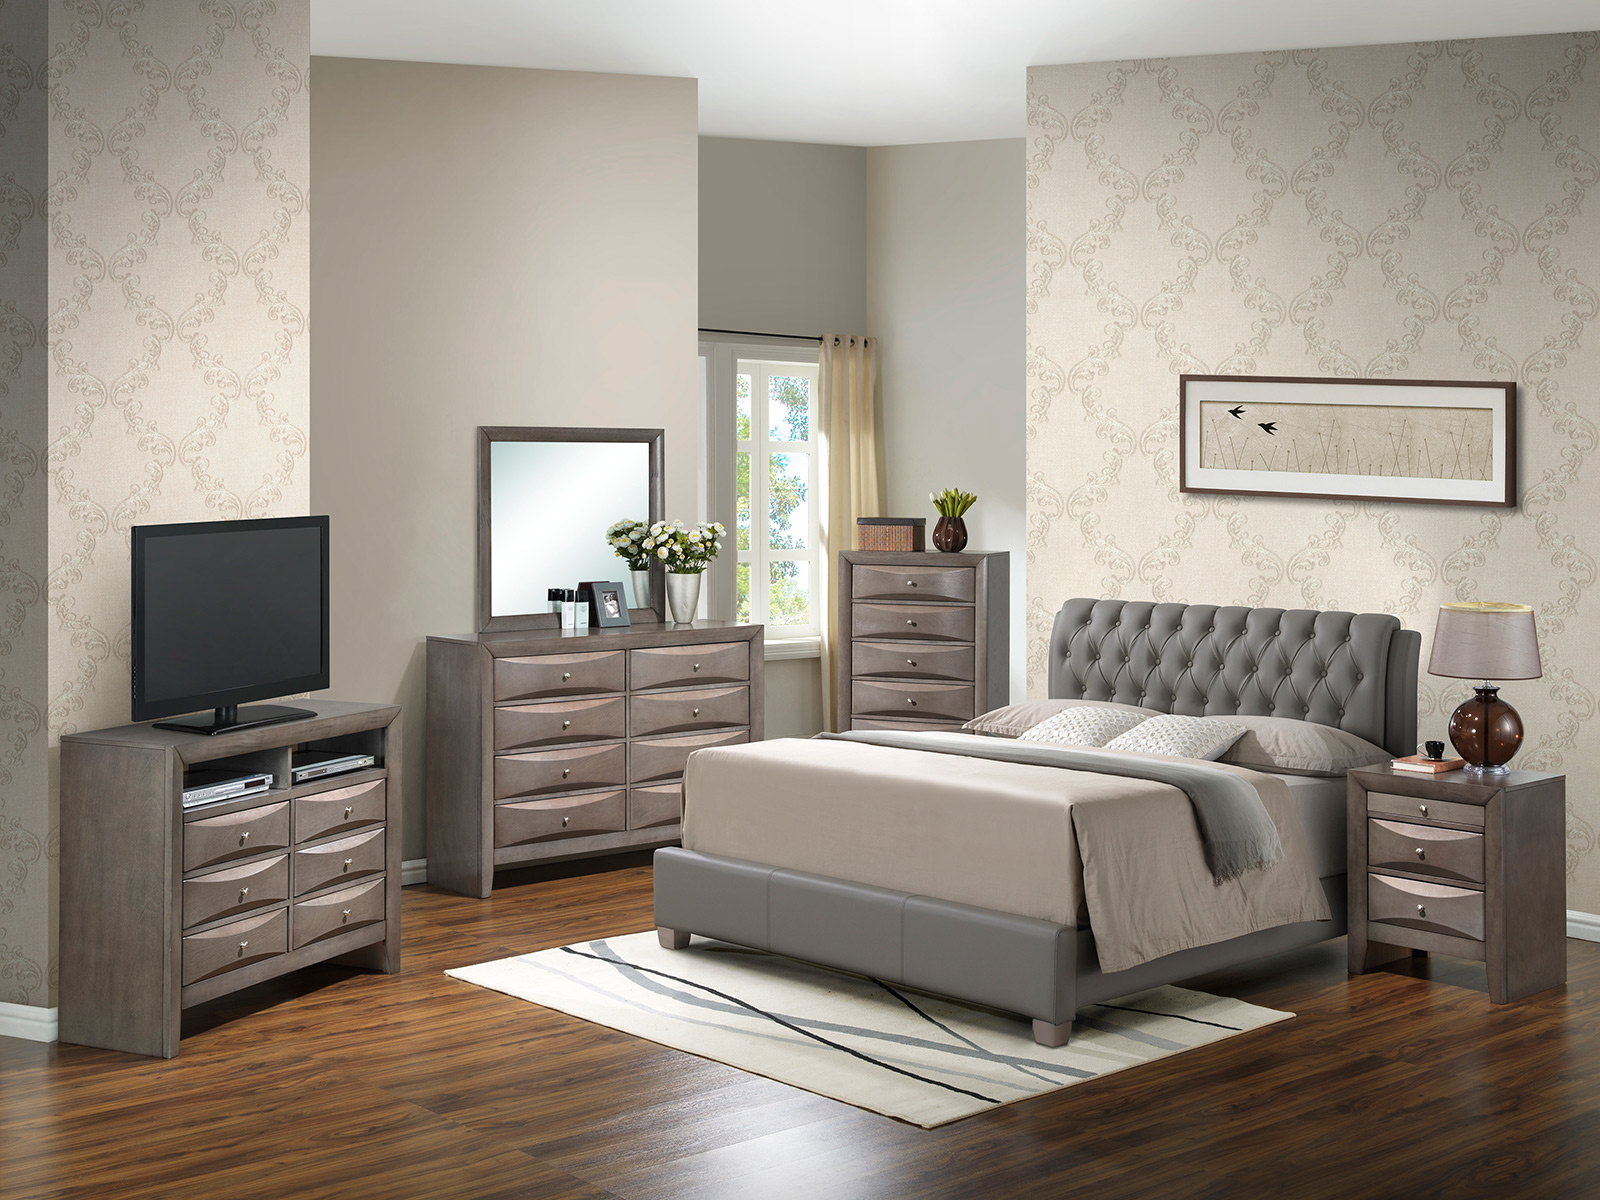 Glory Glory Furniture G1505C Bedroom Set In Gray